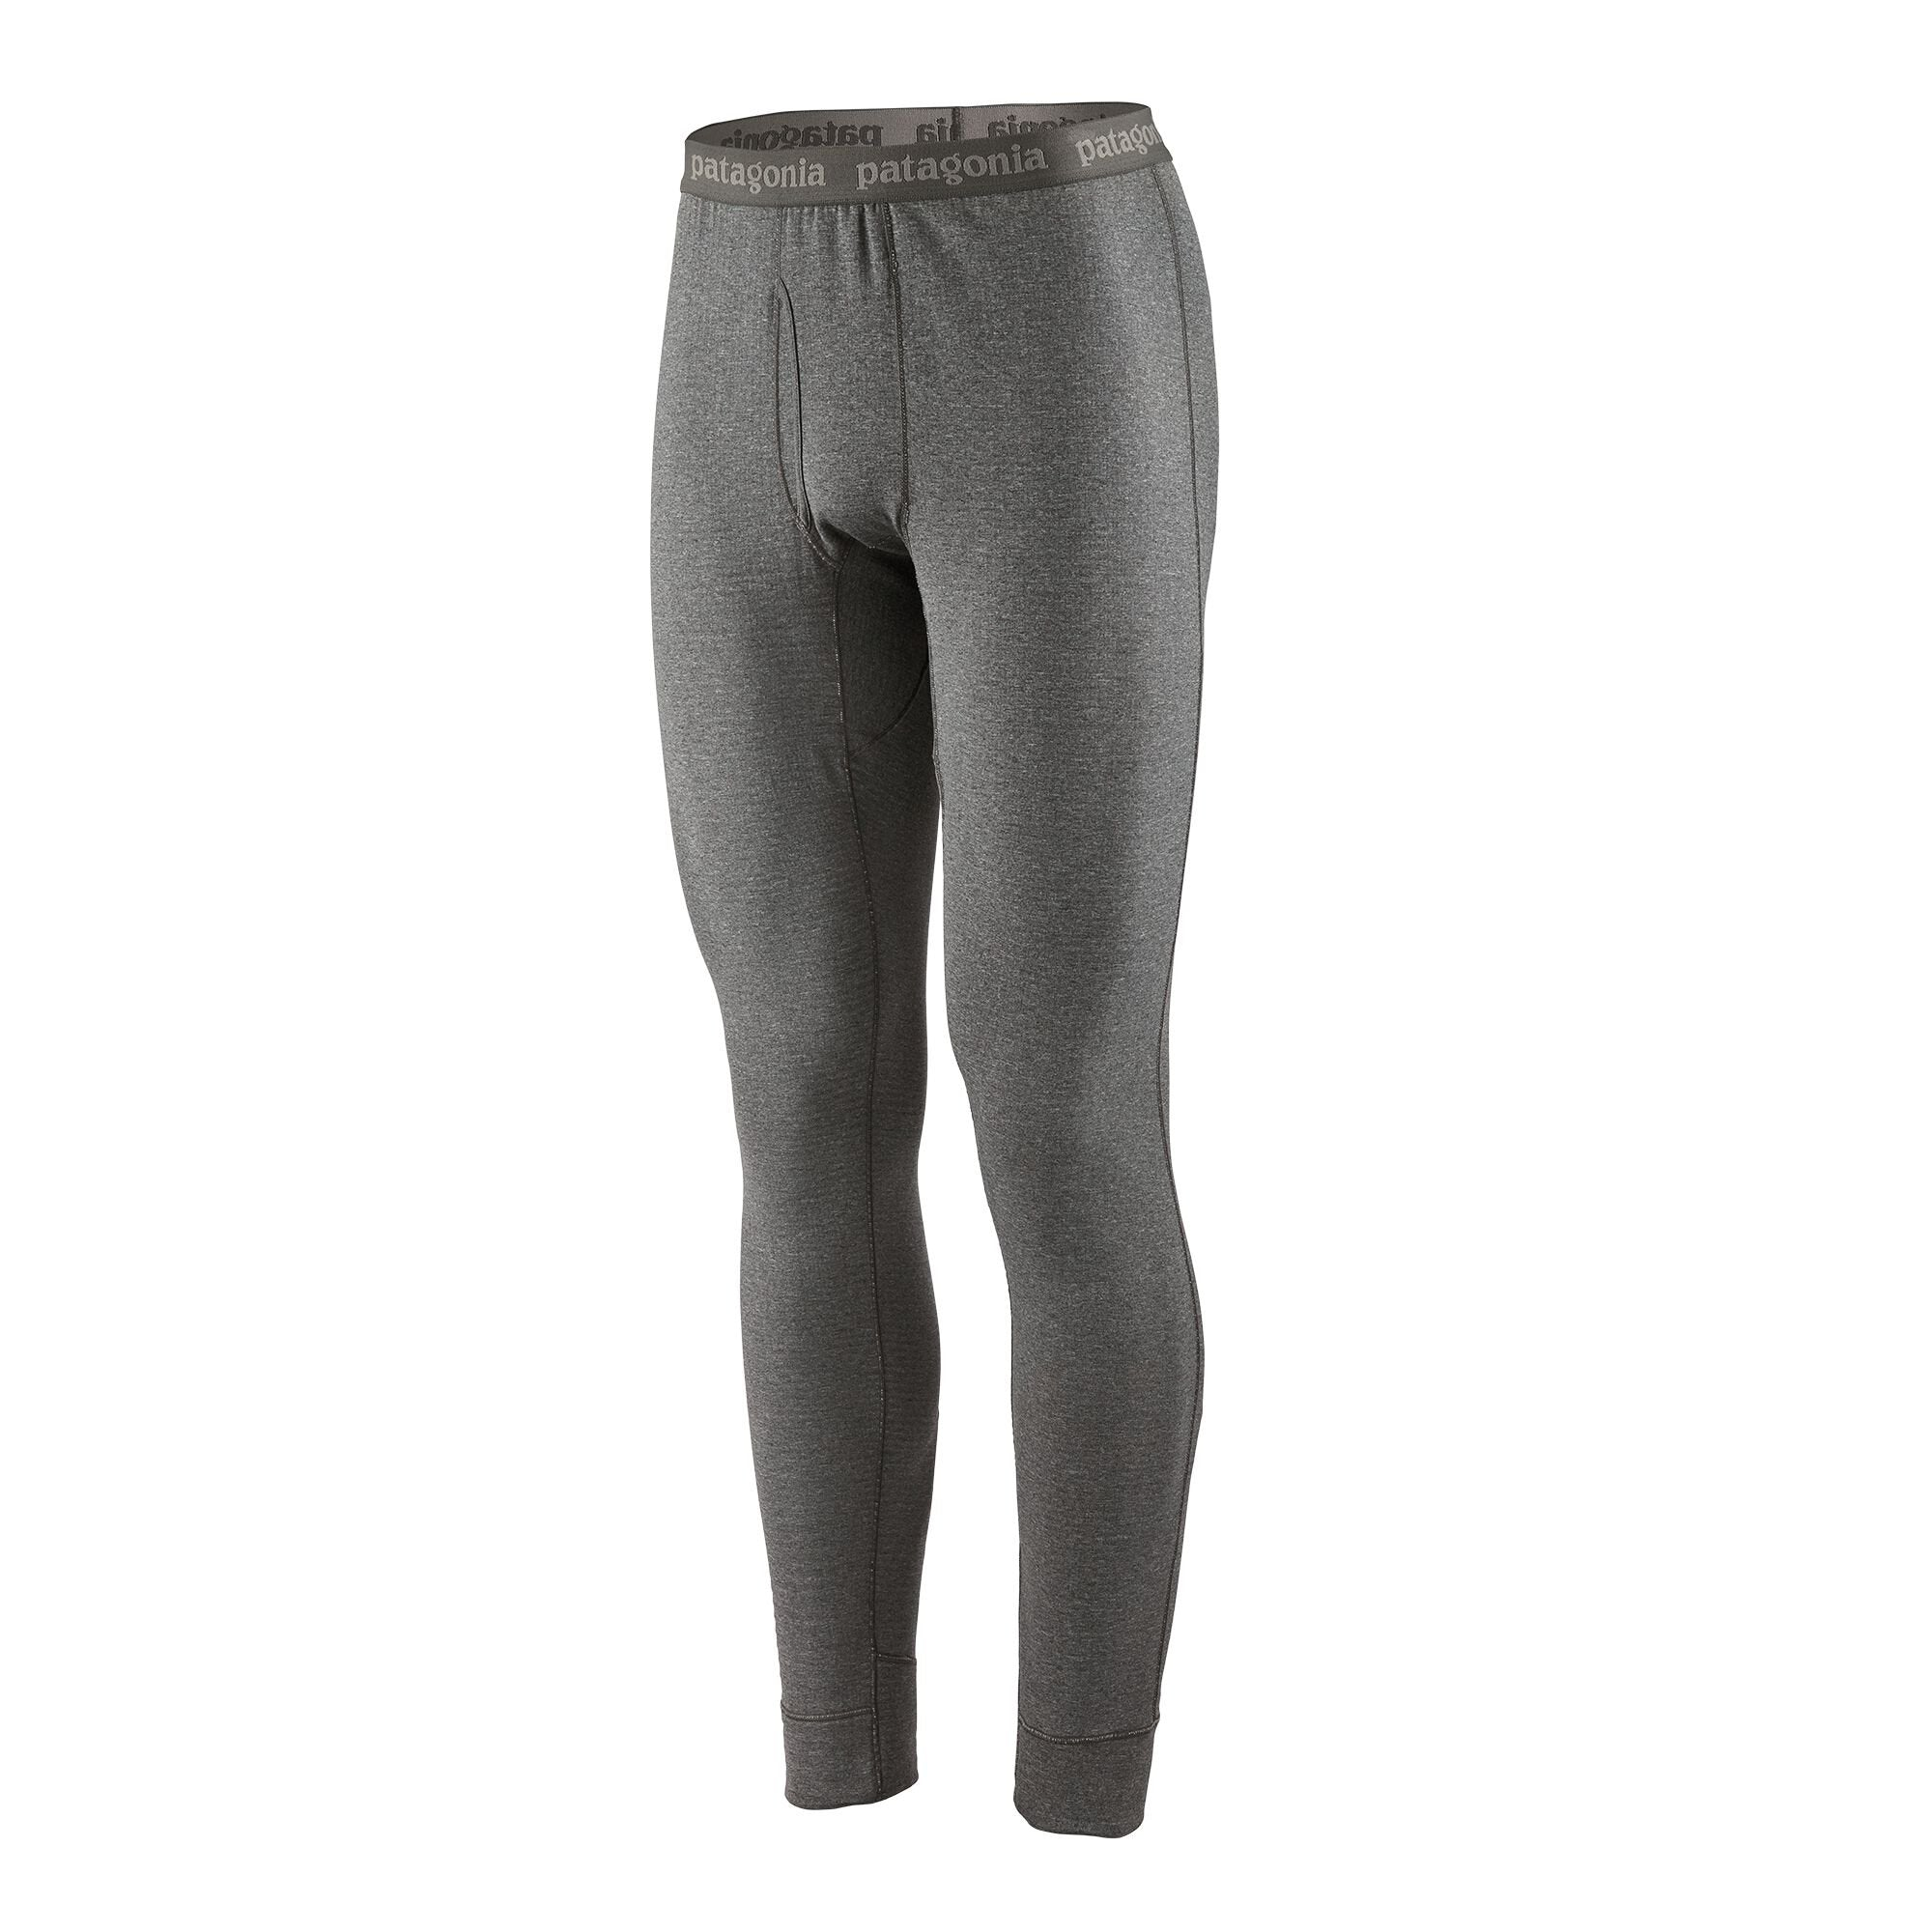 Primera Capa Pantalón Hombre Capilene® Thermal Weight Bottoms Gris Patagonia